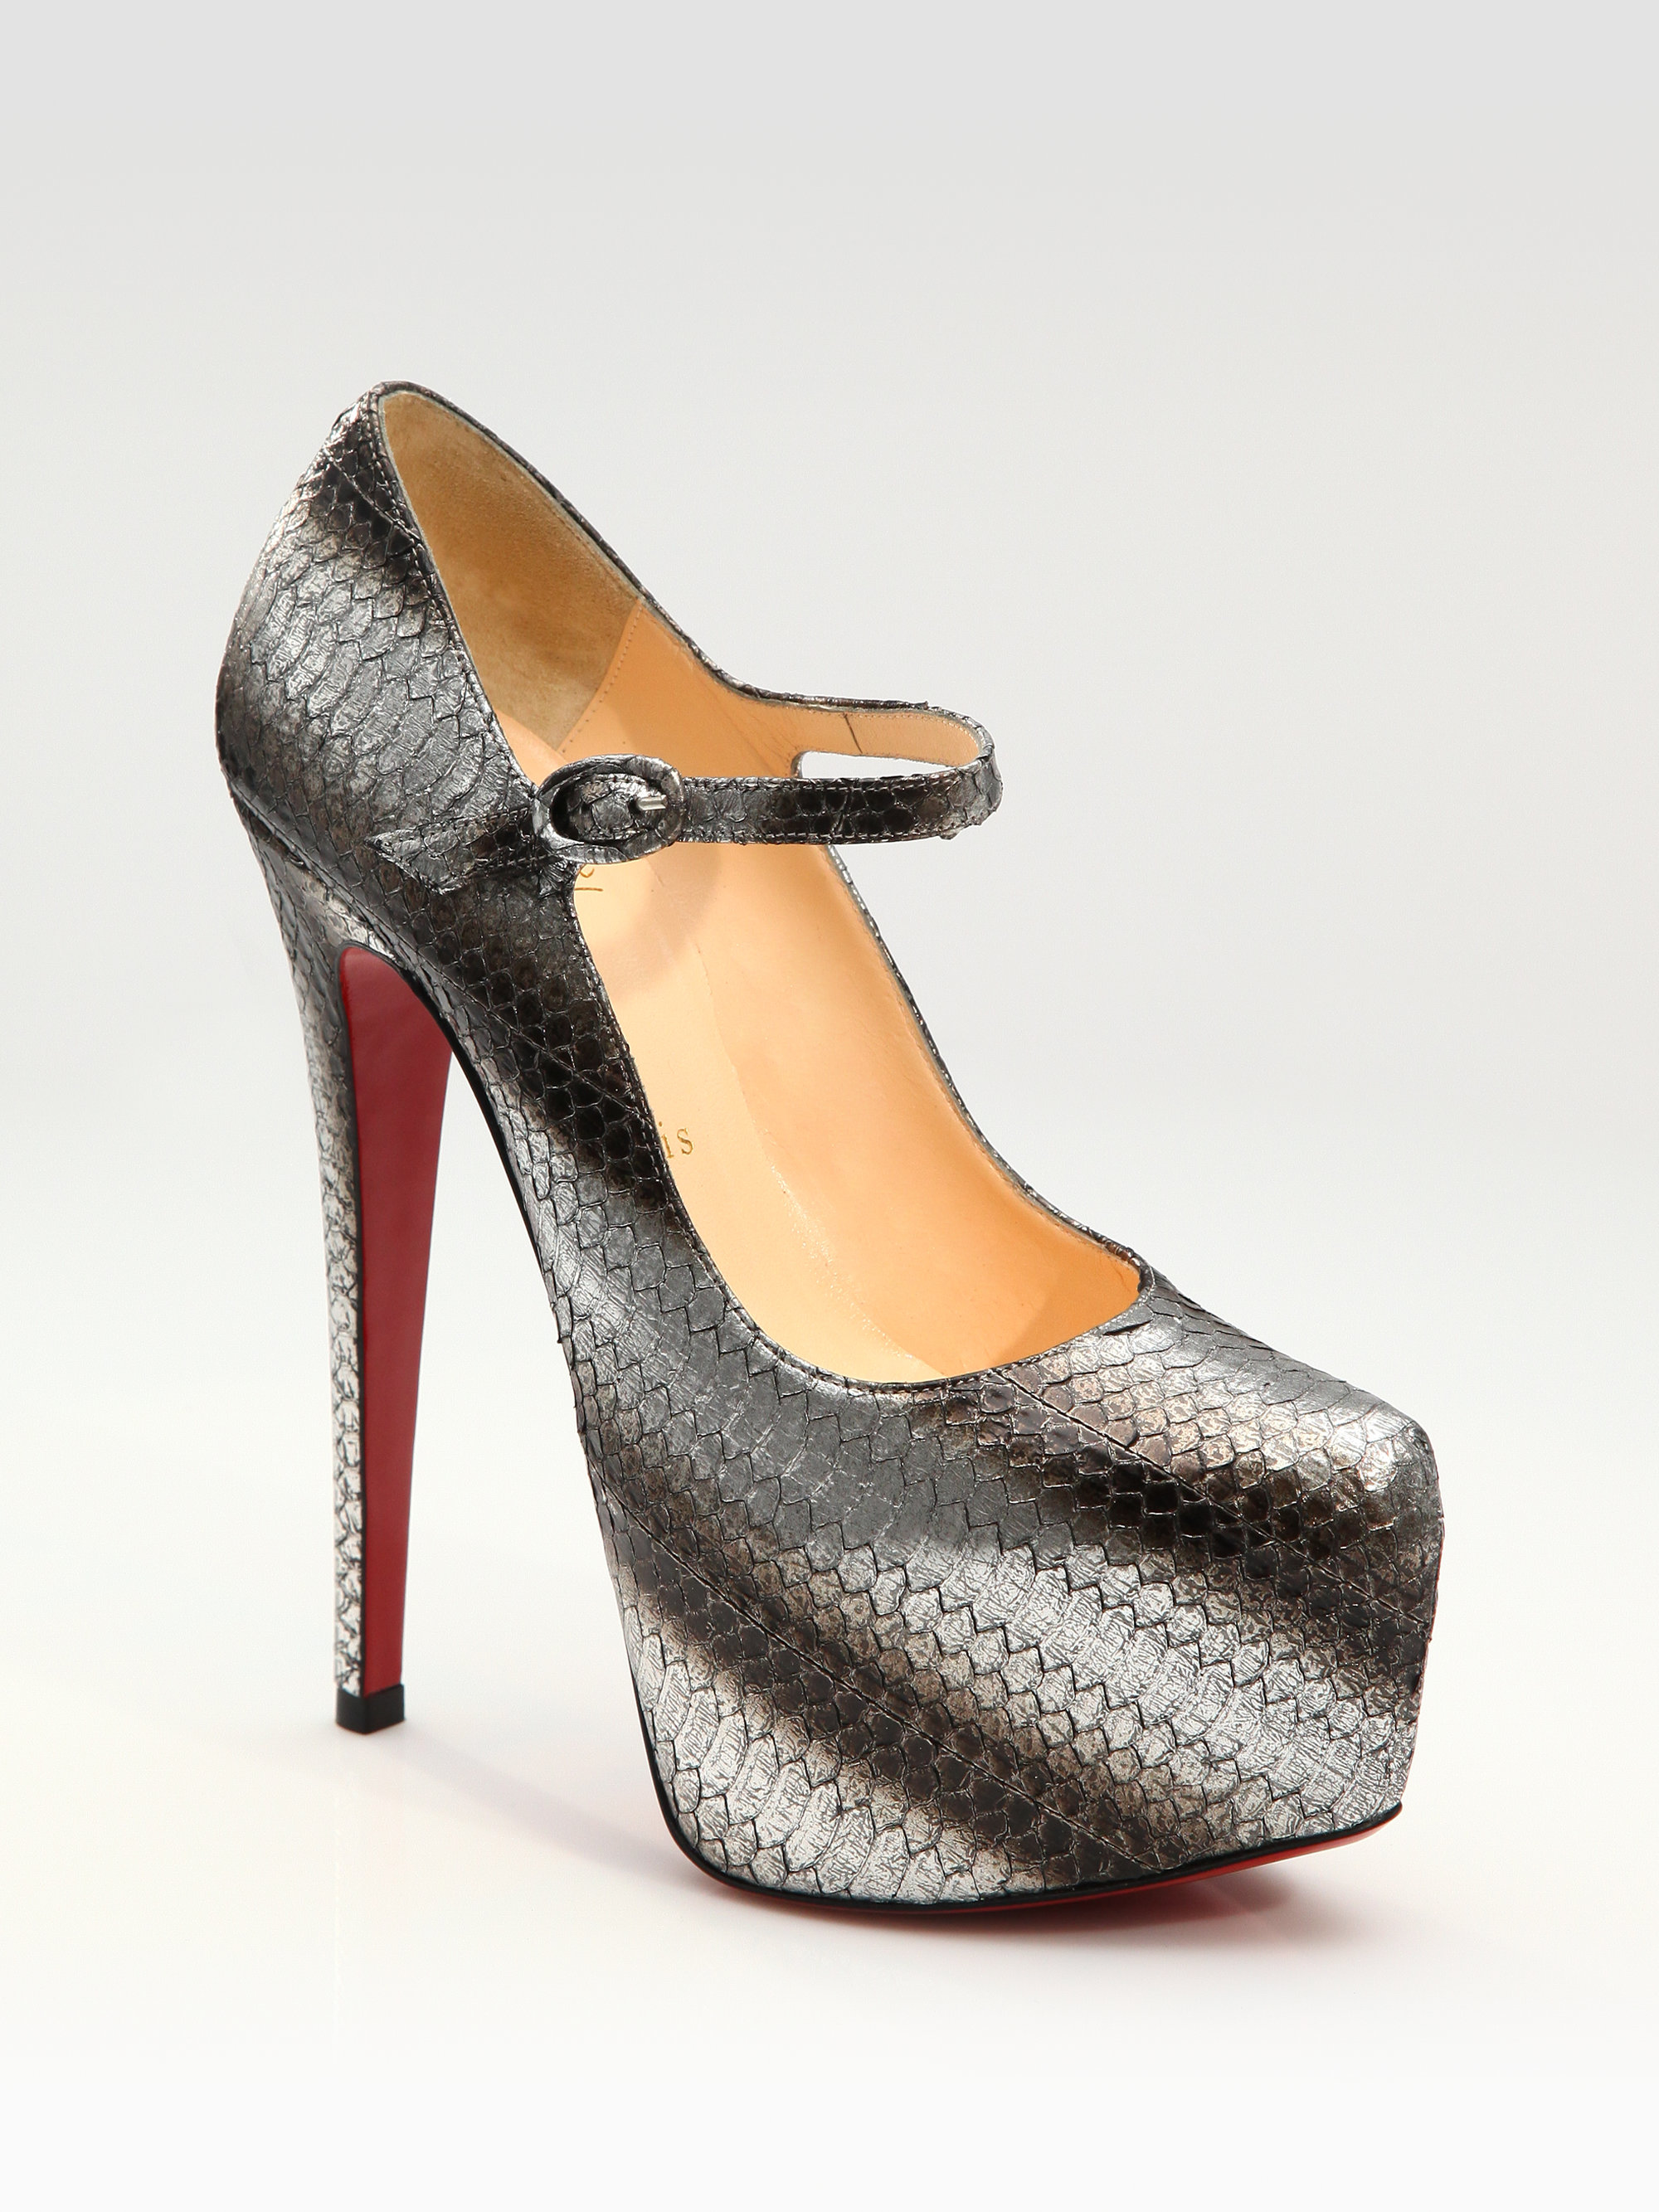 christian louboutin peep-toe pumps Silver metallic snakeskin | The ...